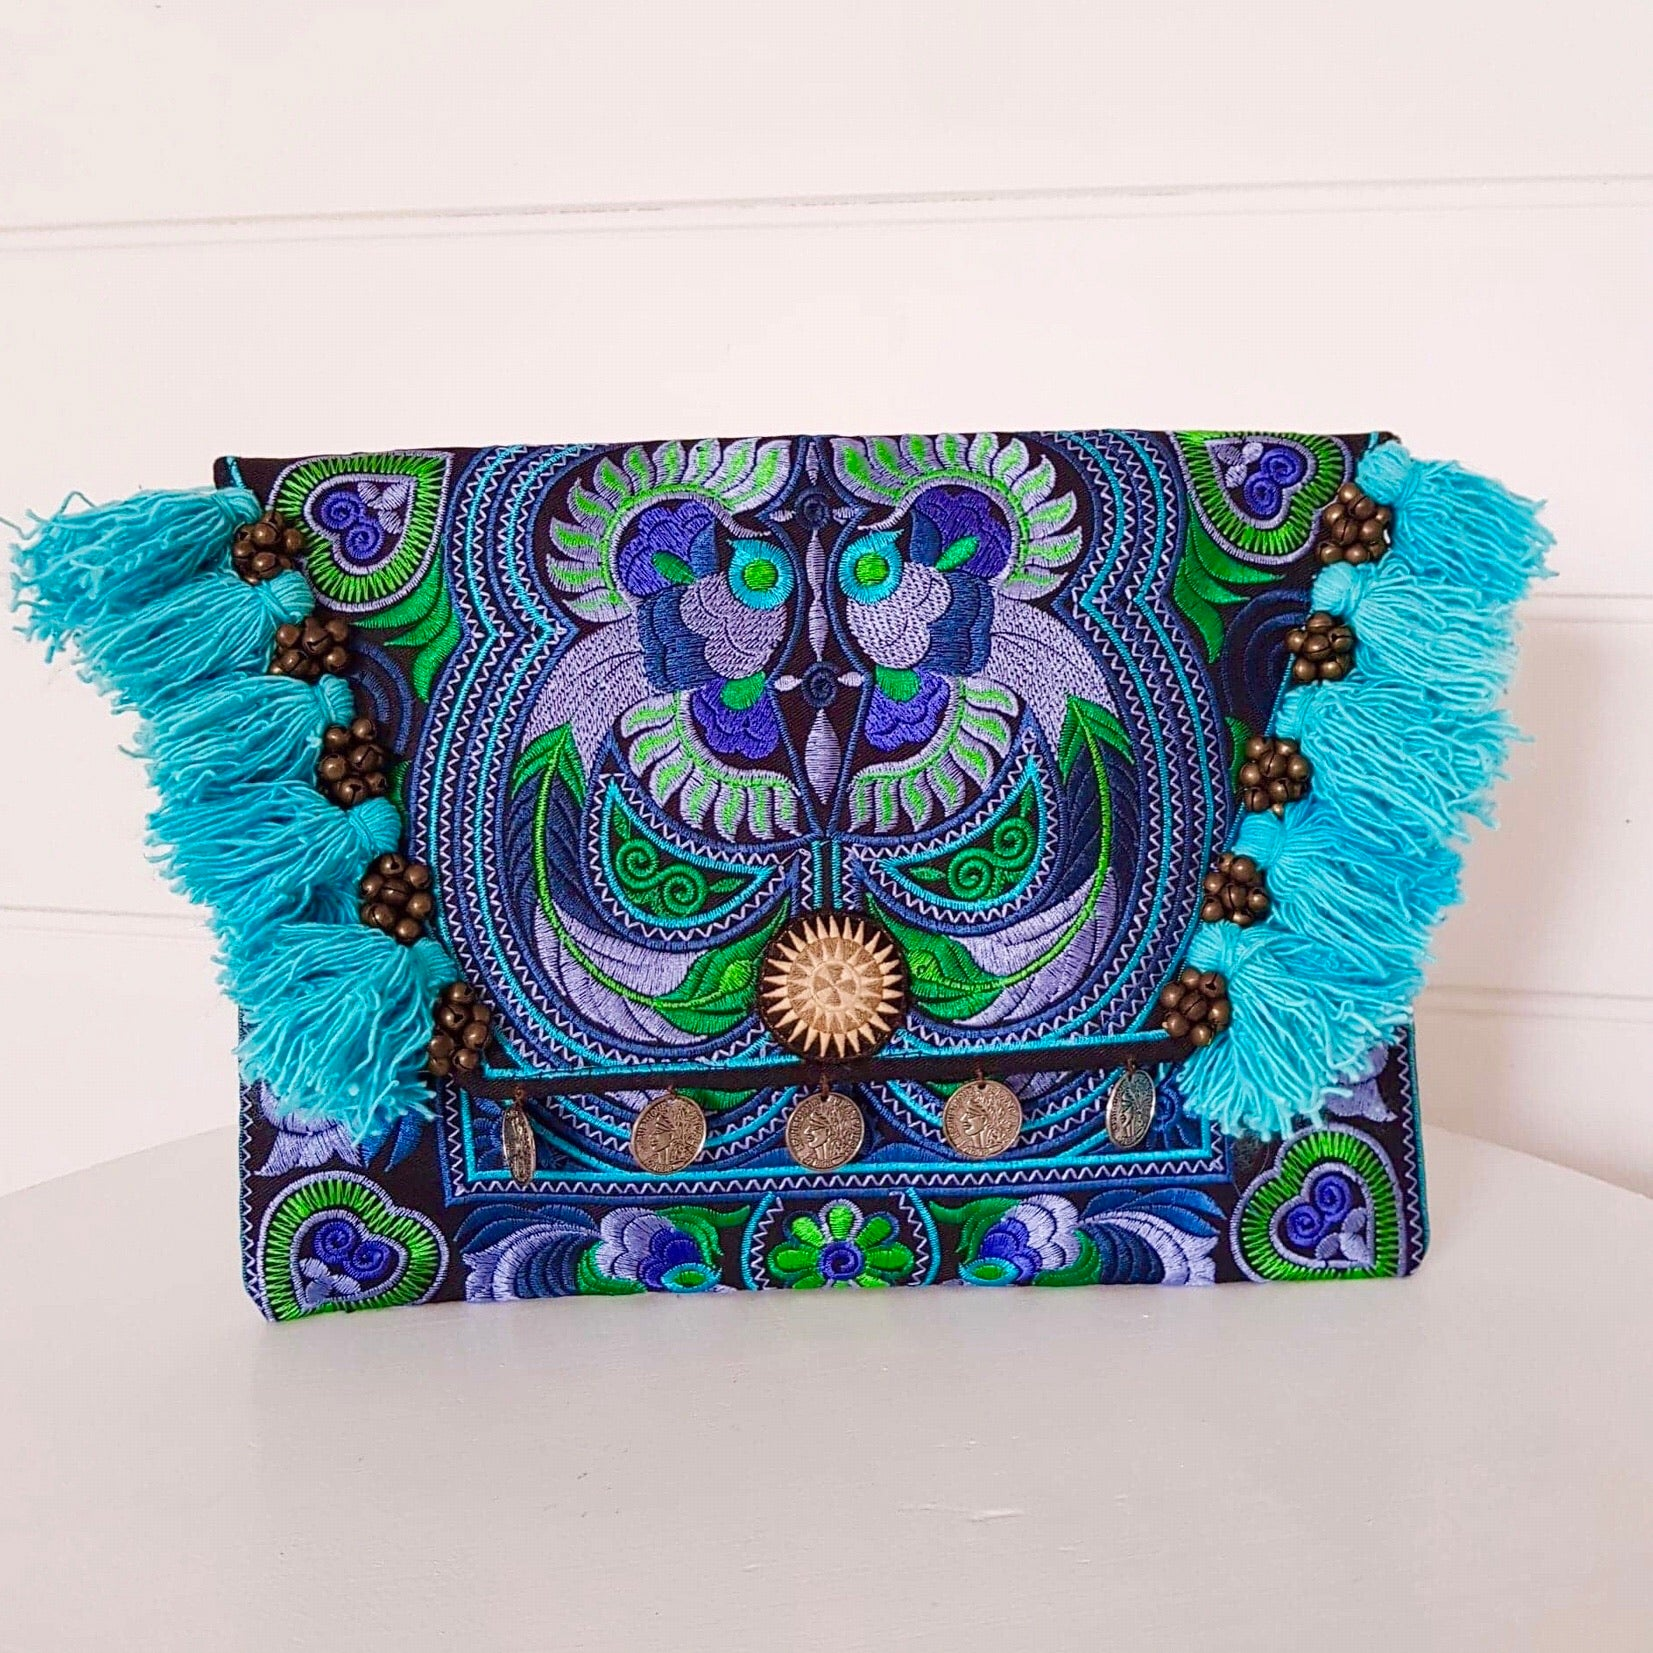 Hill Tribe Embroidered Clutch Turquoise, Indigo & Green